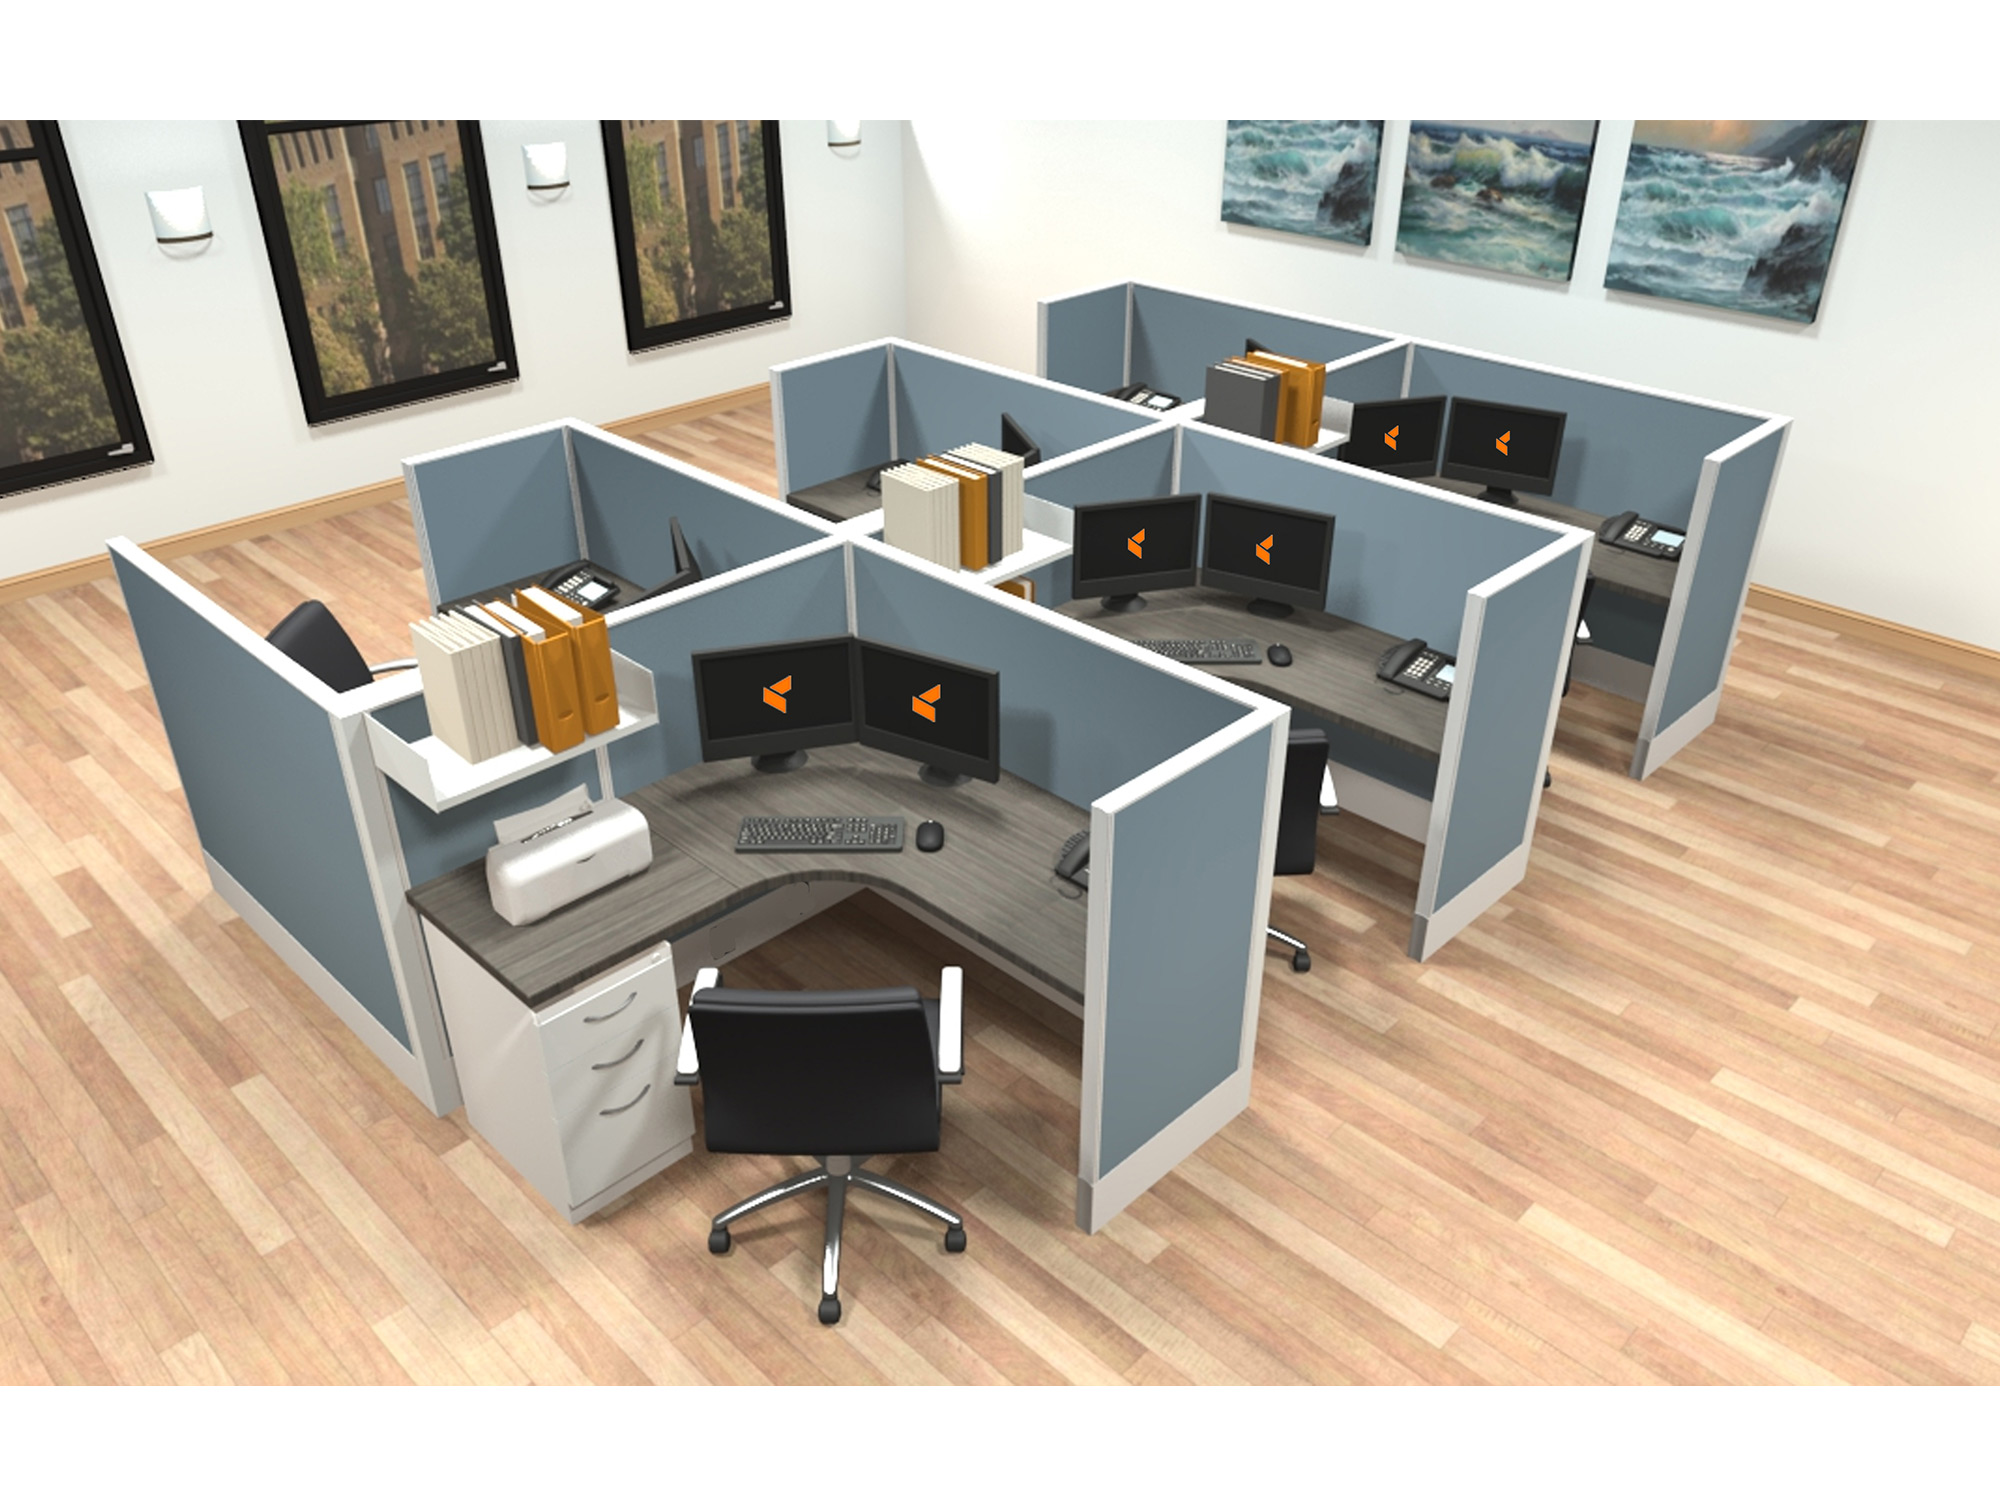 5x5 modular workstations from AIS - 6 Pack Cluster